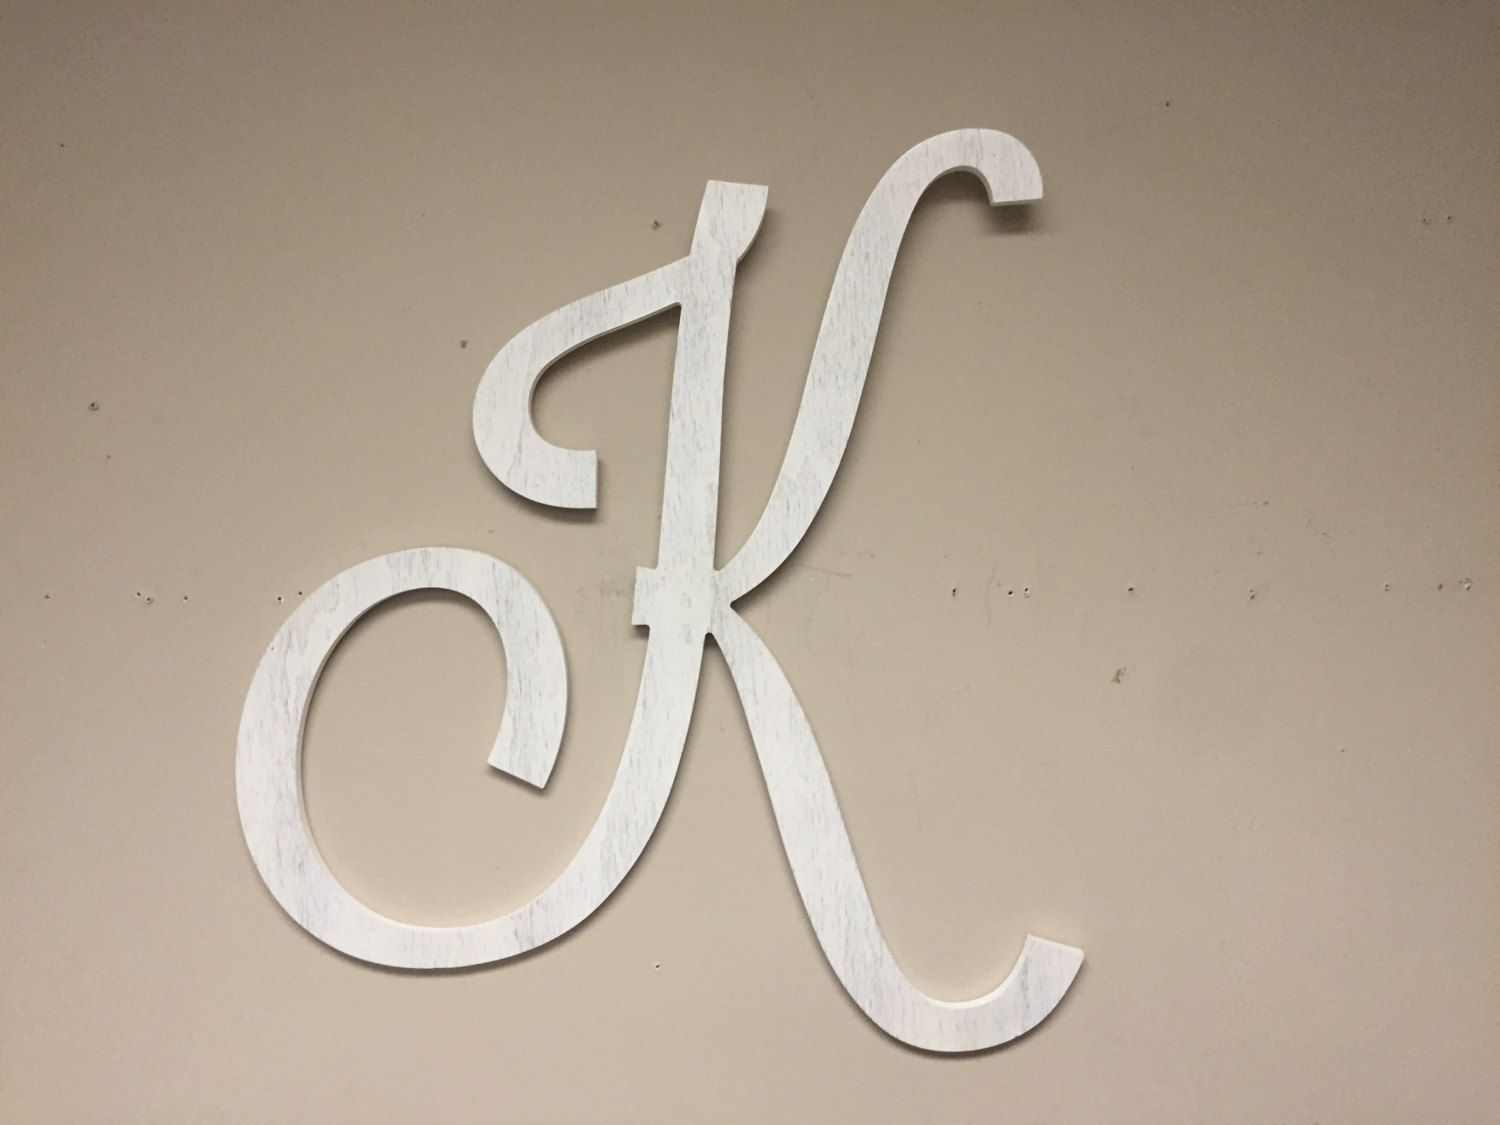 Extra Large Letter K Home Wall Decor Wall Hanging Wall Decal Letter Decor Free Standing Wedding De Decorative Letters Wooden Initials Kids Room Wallpaper